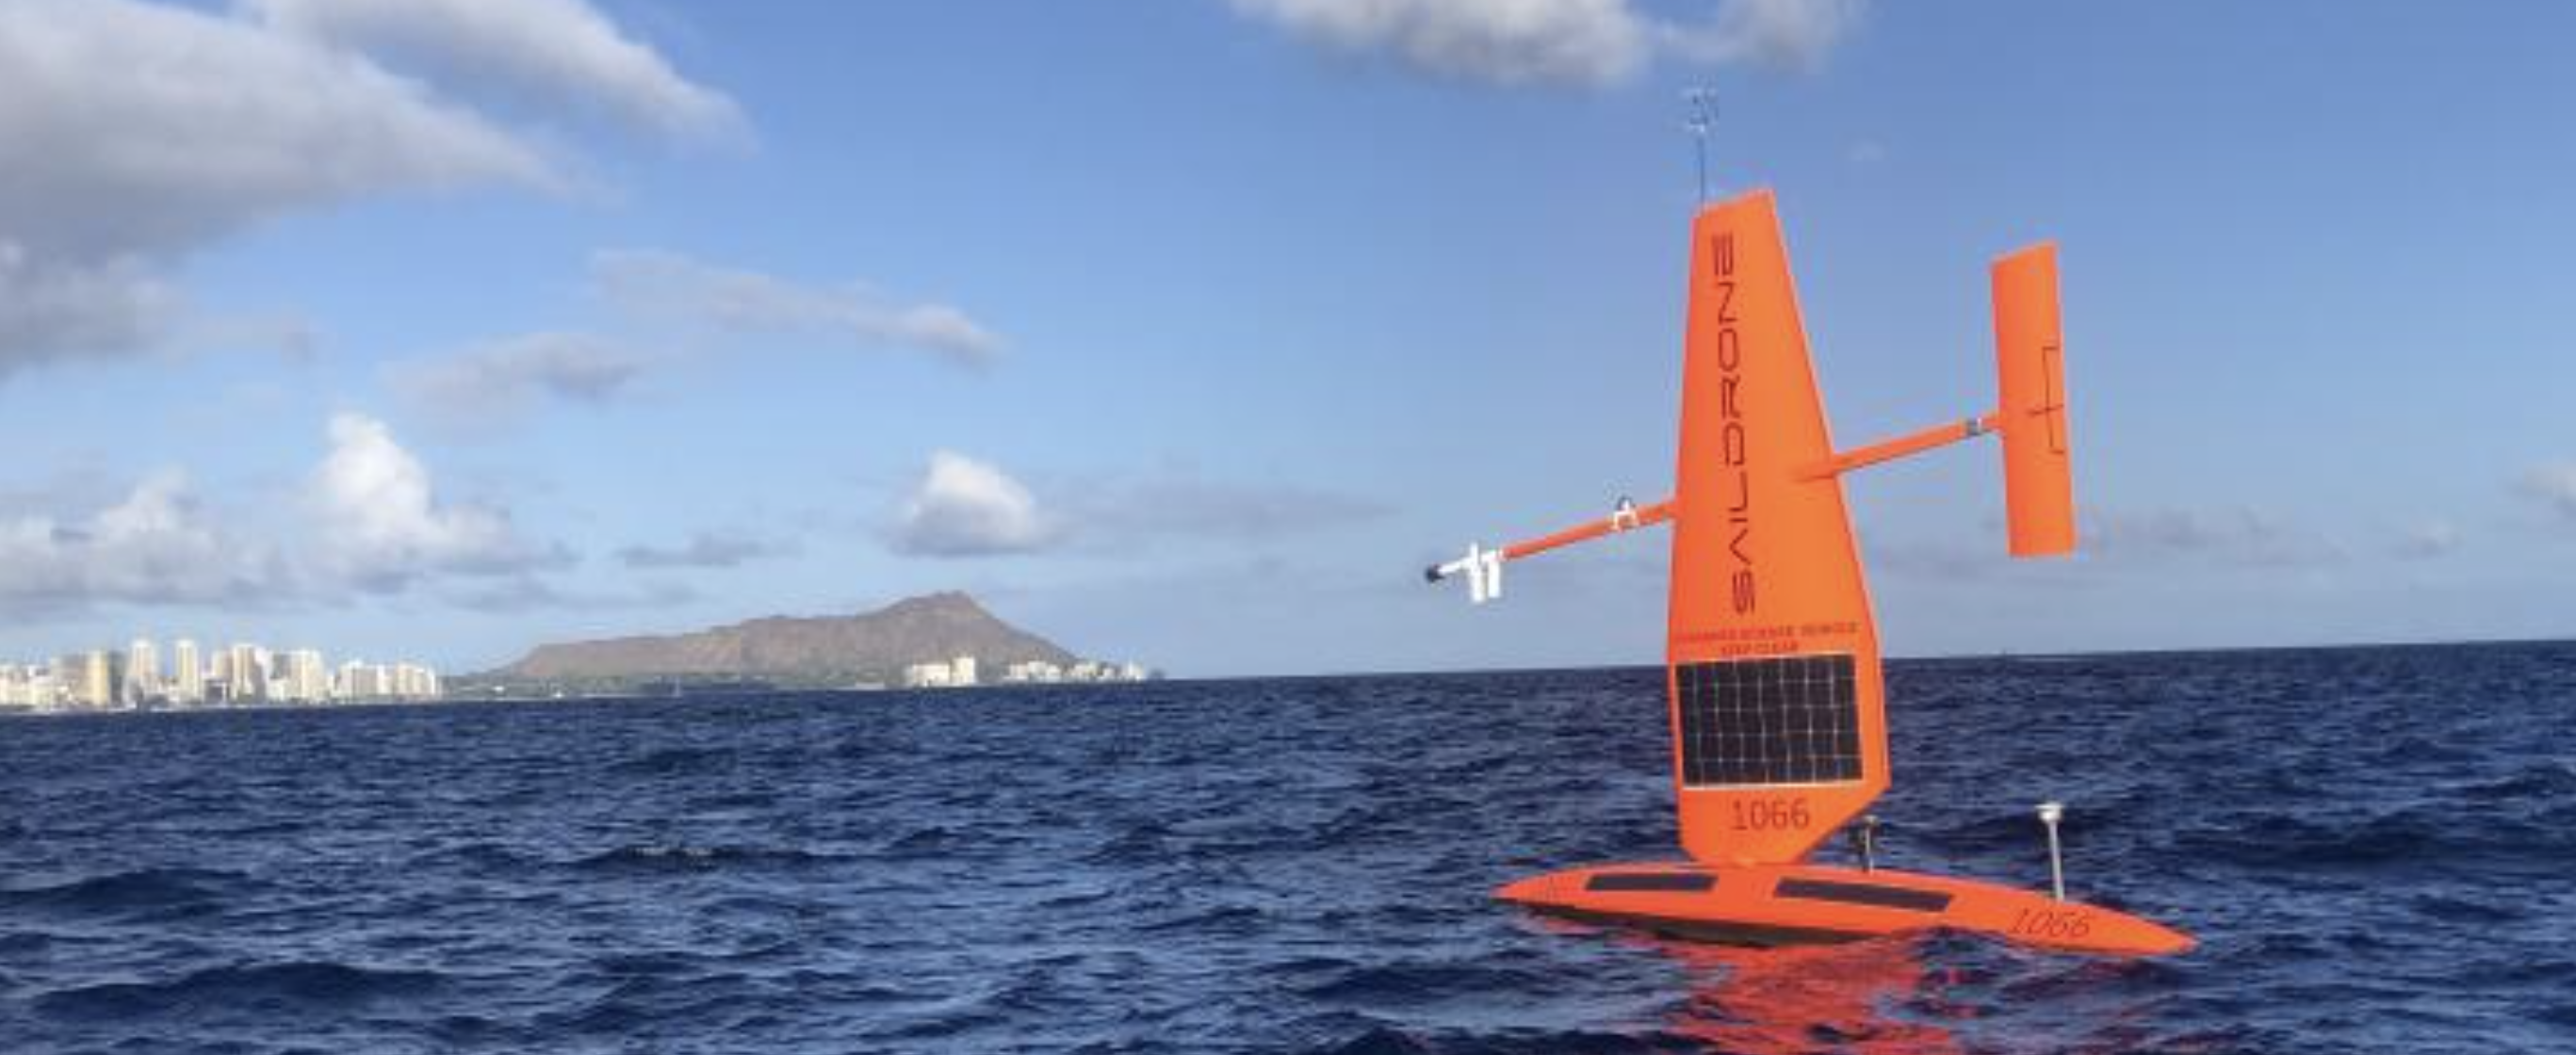 Saildrone (an autonomous sailing drone) working to improve the Tropical Pacific Observing System (Source: NOAA PMEL)